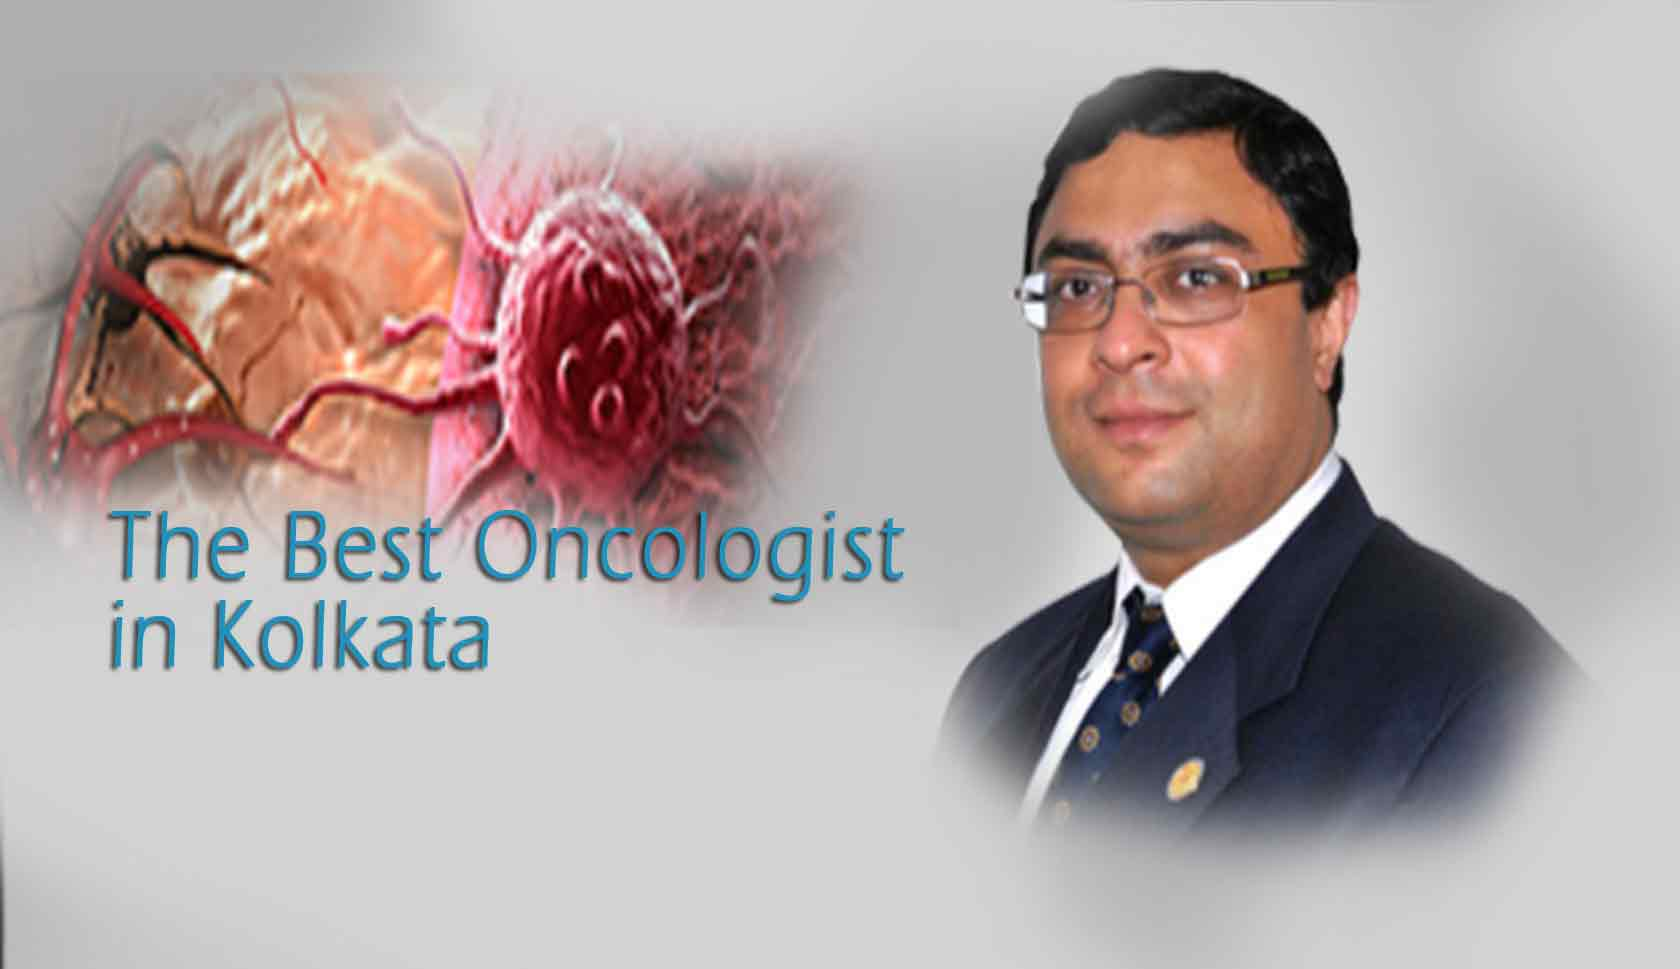 thesis surgical oncology mumbai university Dr rajesh mistry is surgical oncologist in kokilaben dhirubhai ambani hospital, andheri and specializes in surgical oncology mumbai university.